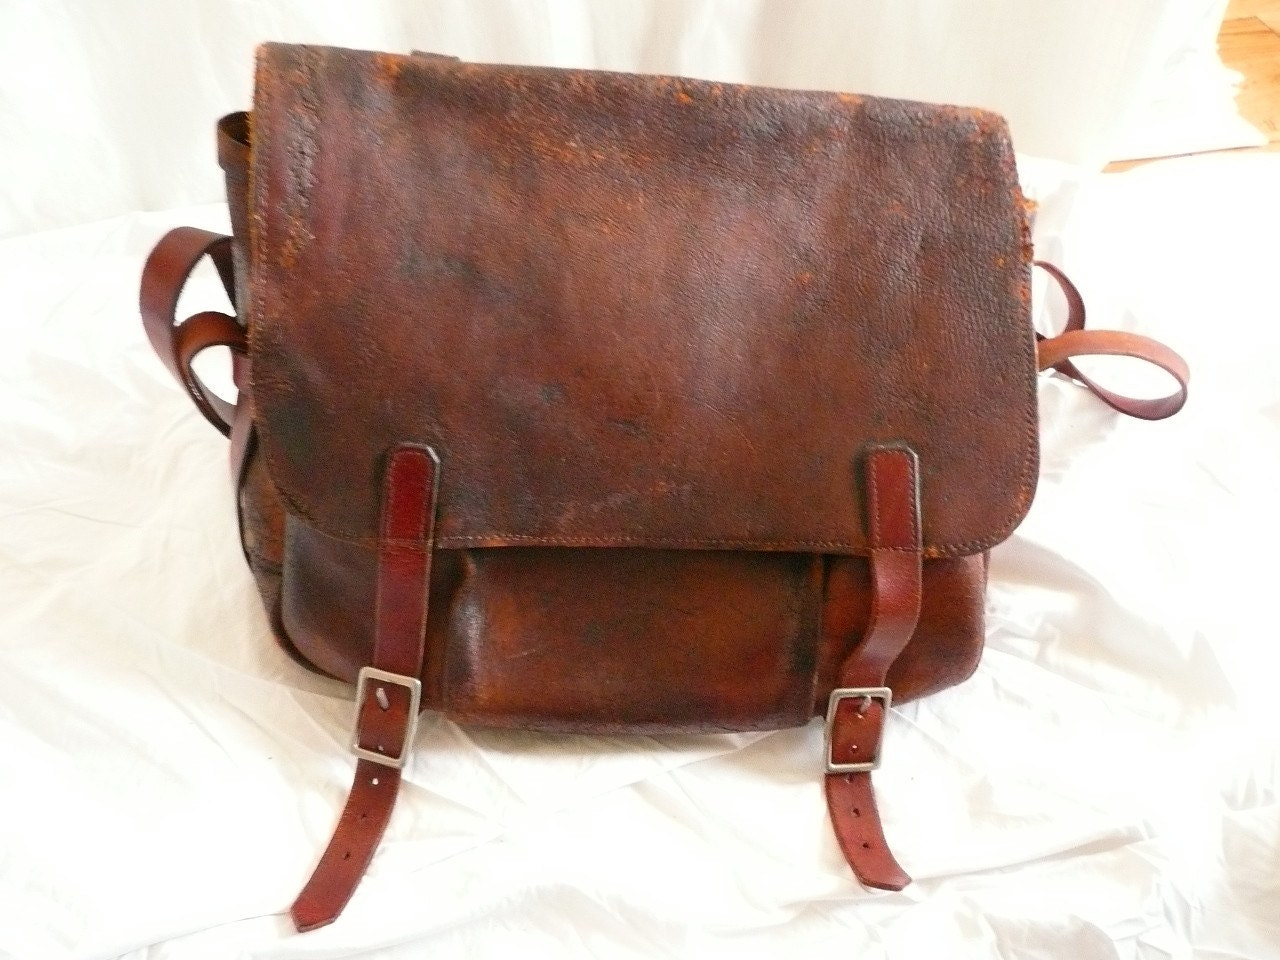 1964 Vintage Leather US Mail Bag Satchel